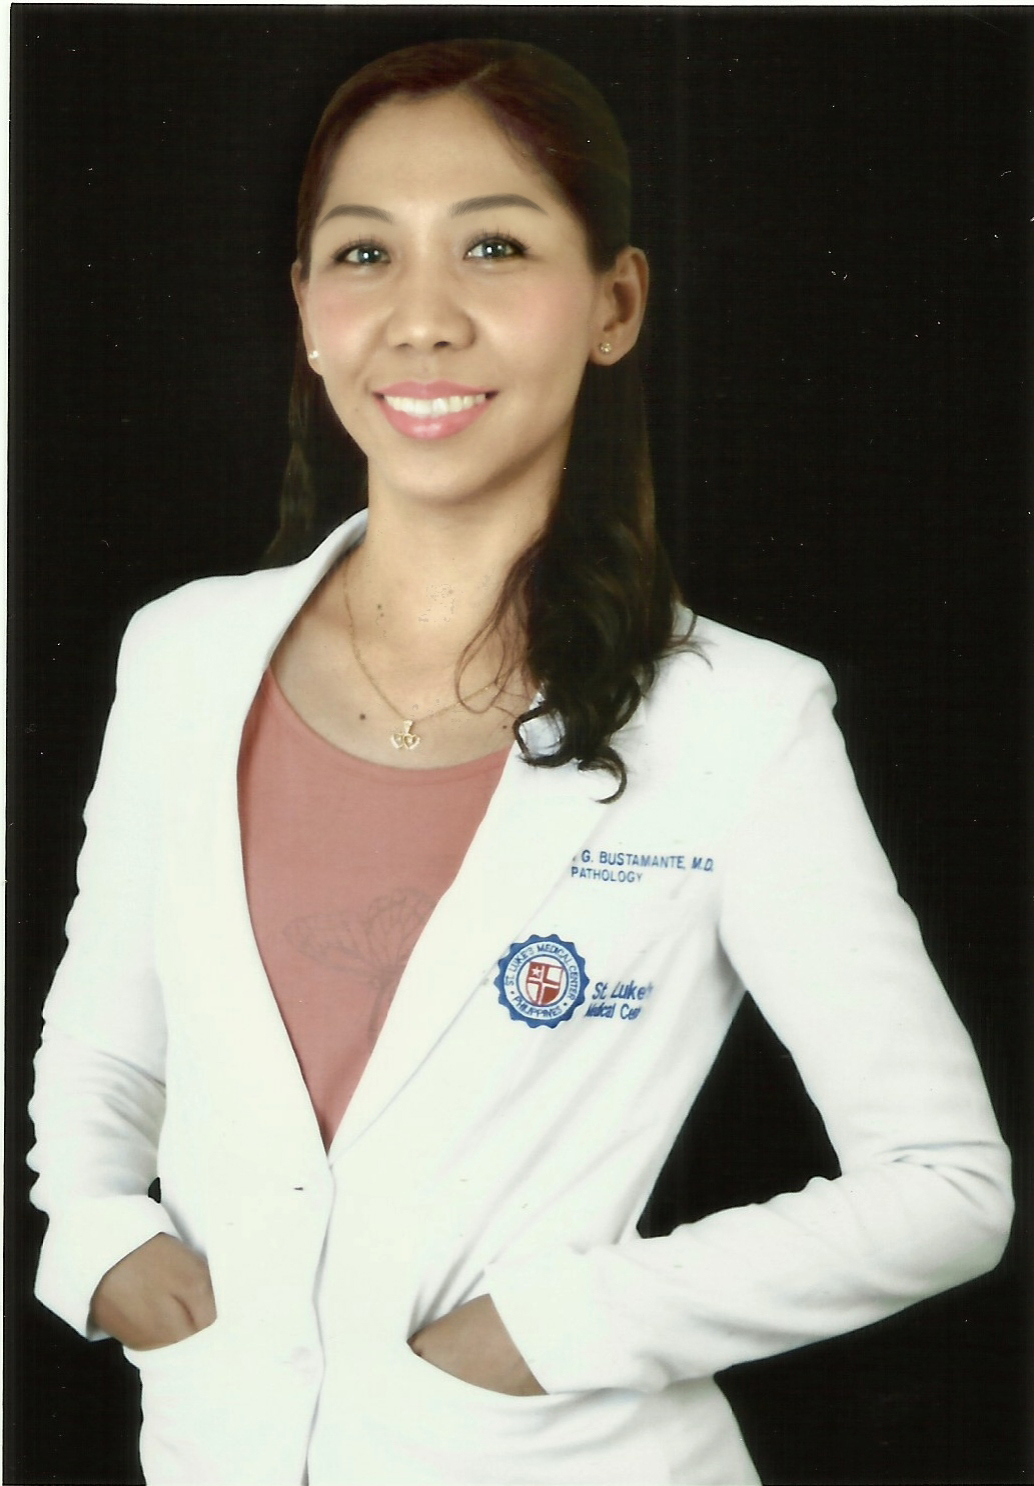 Czam Faith Bustamante, MD, DPSP